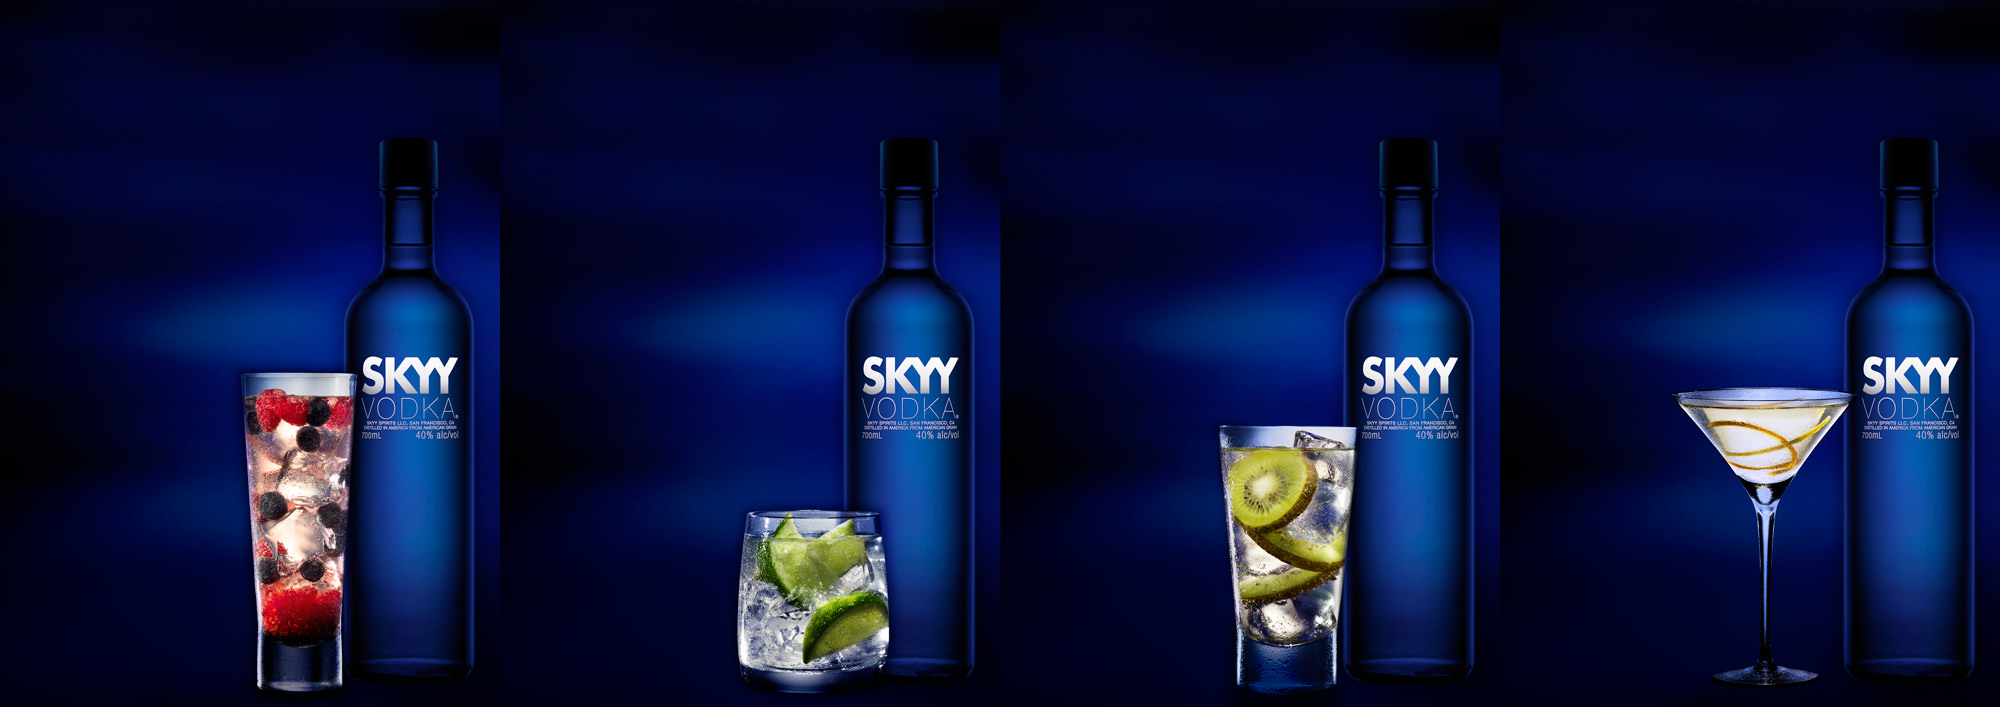 SKYY-VODKA-STEPHEN-STEWART.jpg